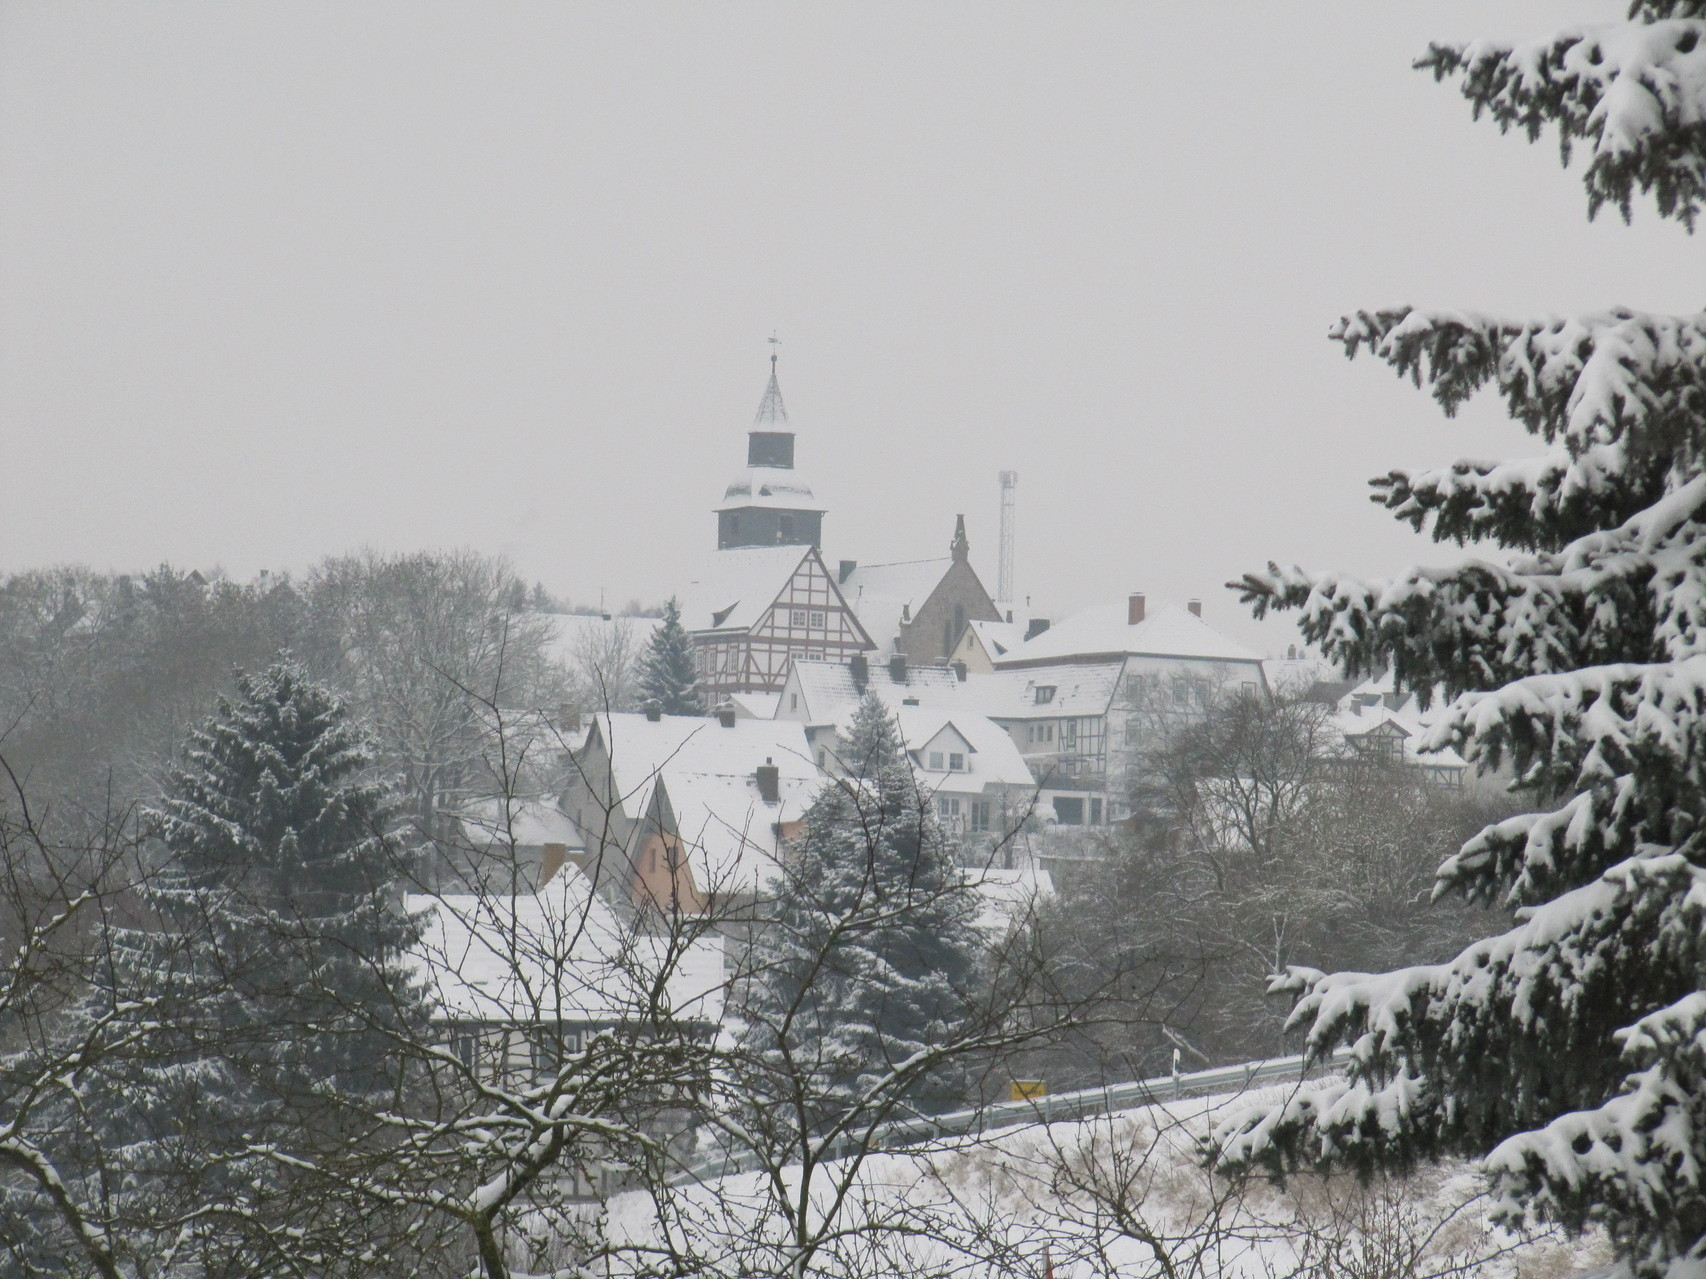 Trendelburg im Winter